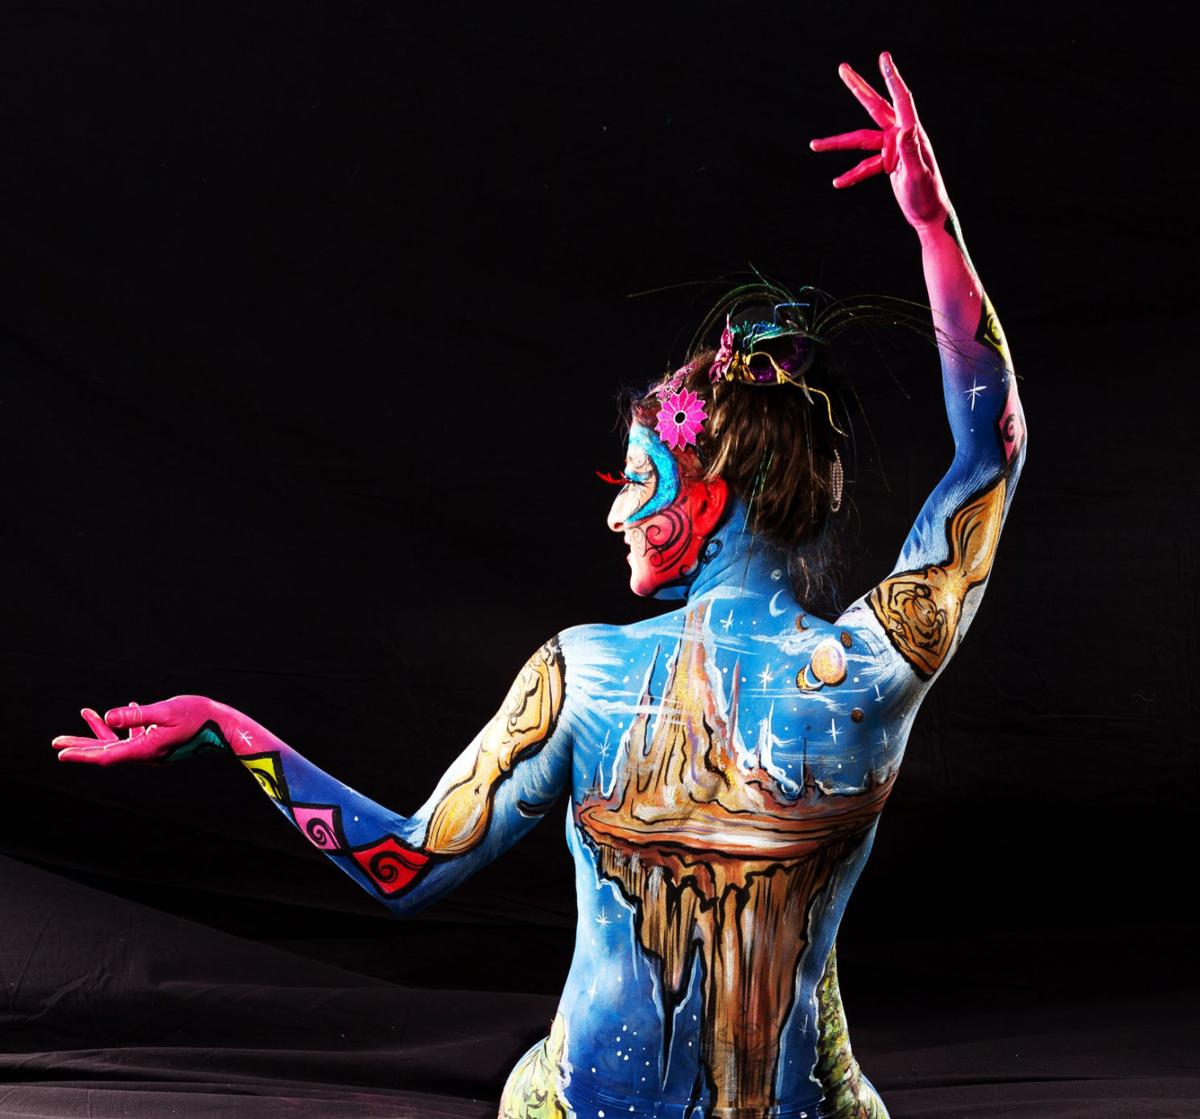 Triad Body Painter To Compete In Tv Series Entertainment Greensboro Com